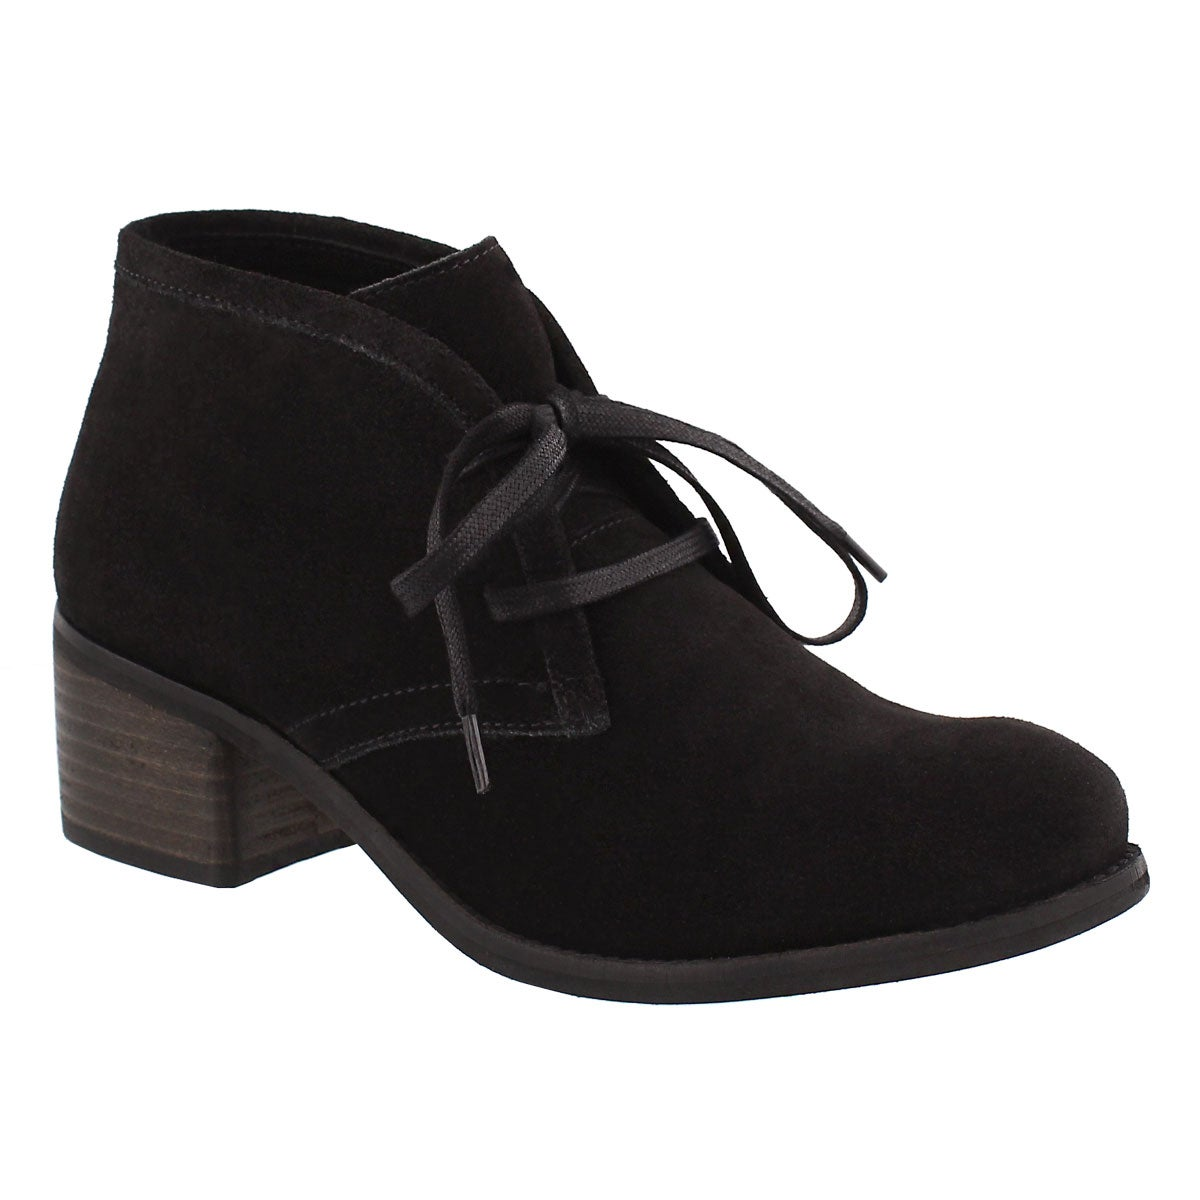 Women's FIONA black lace up casual booties